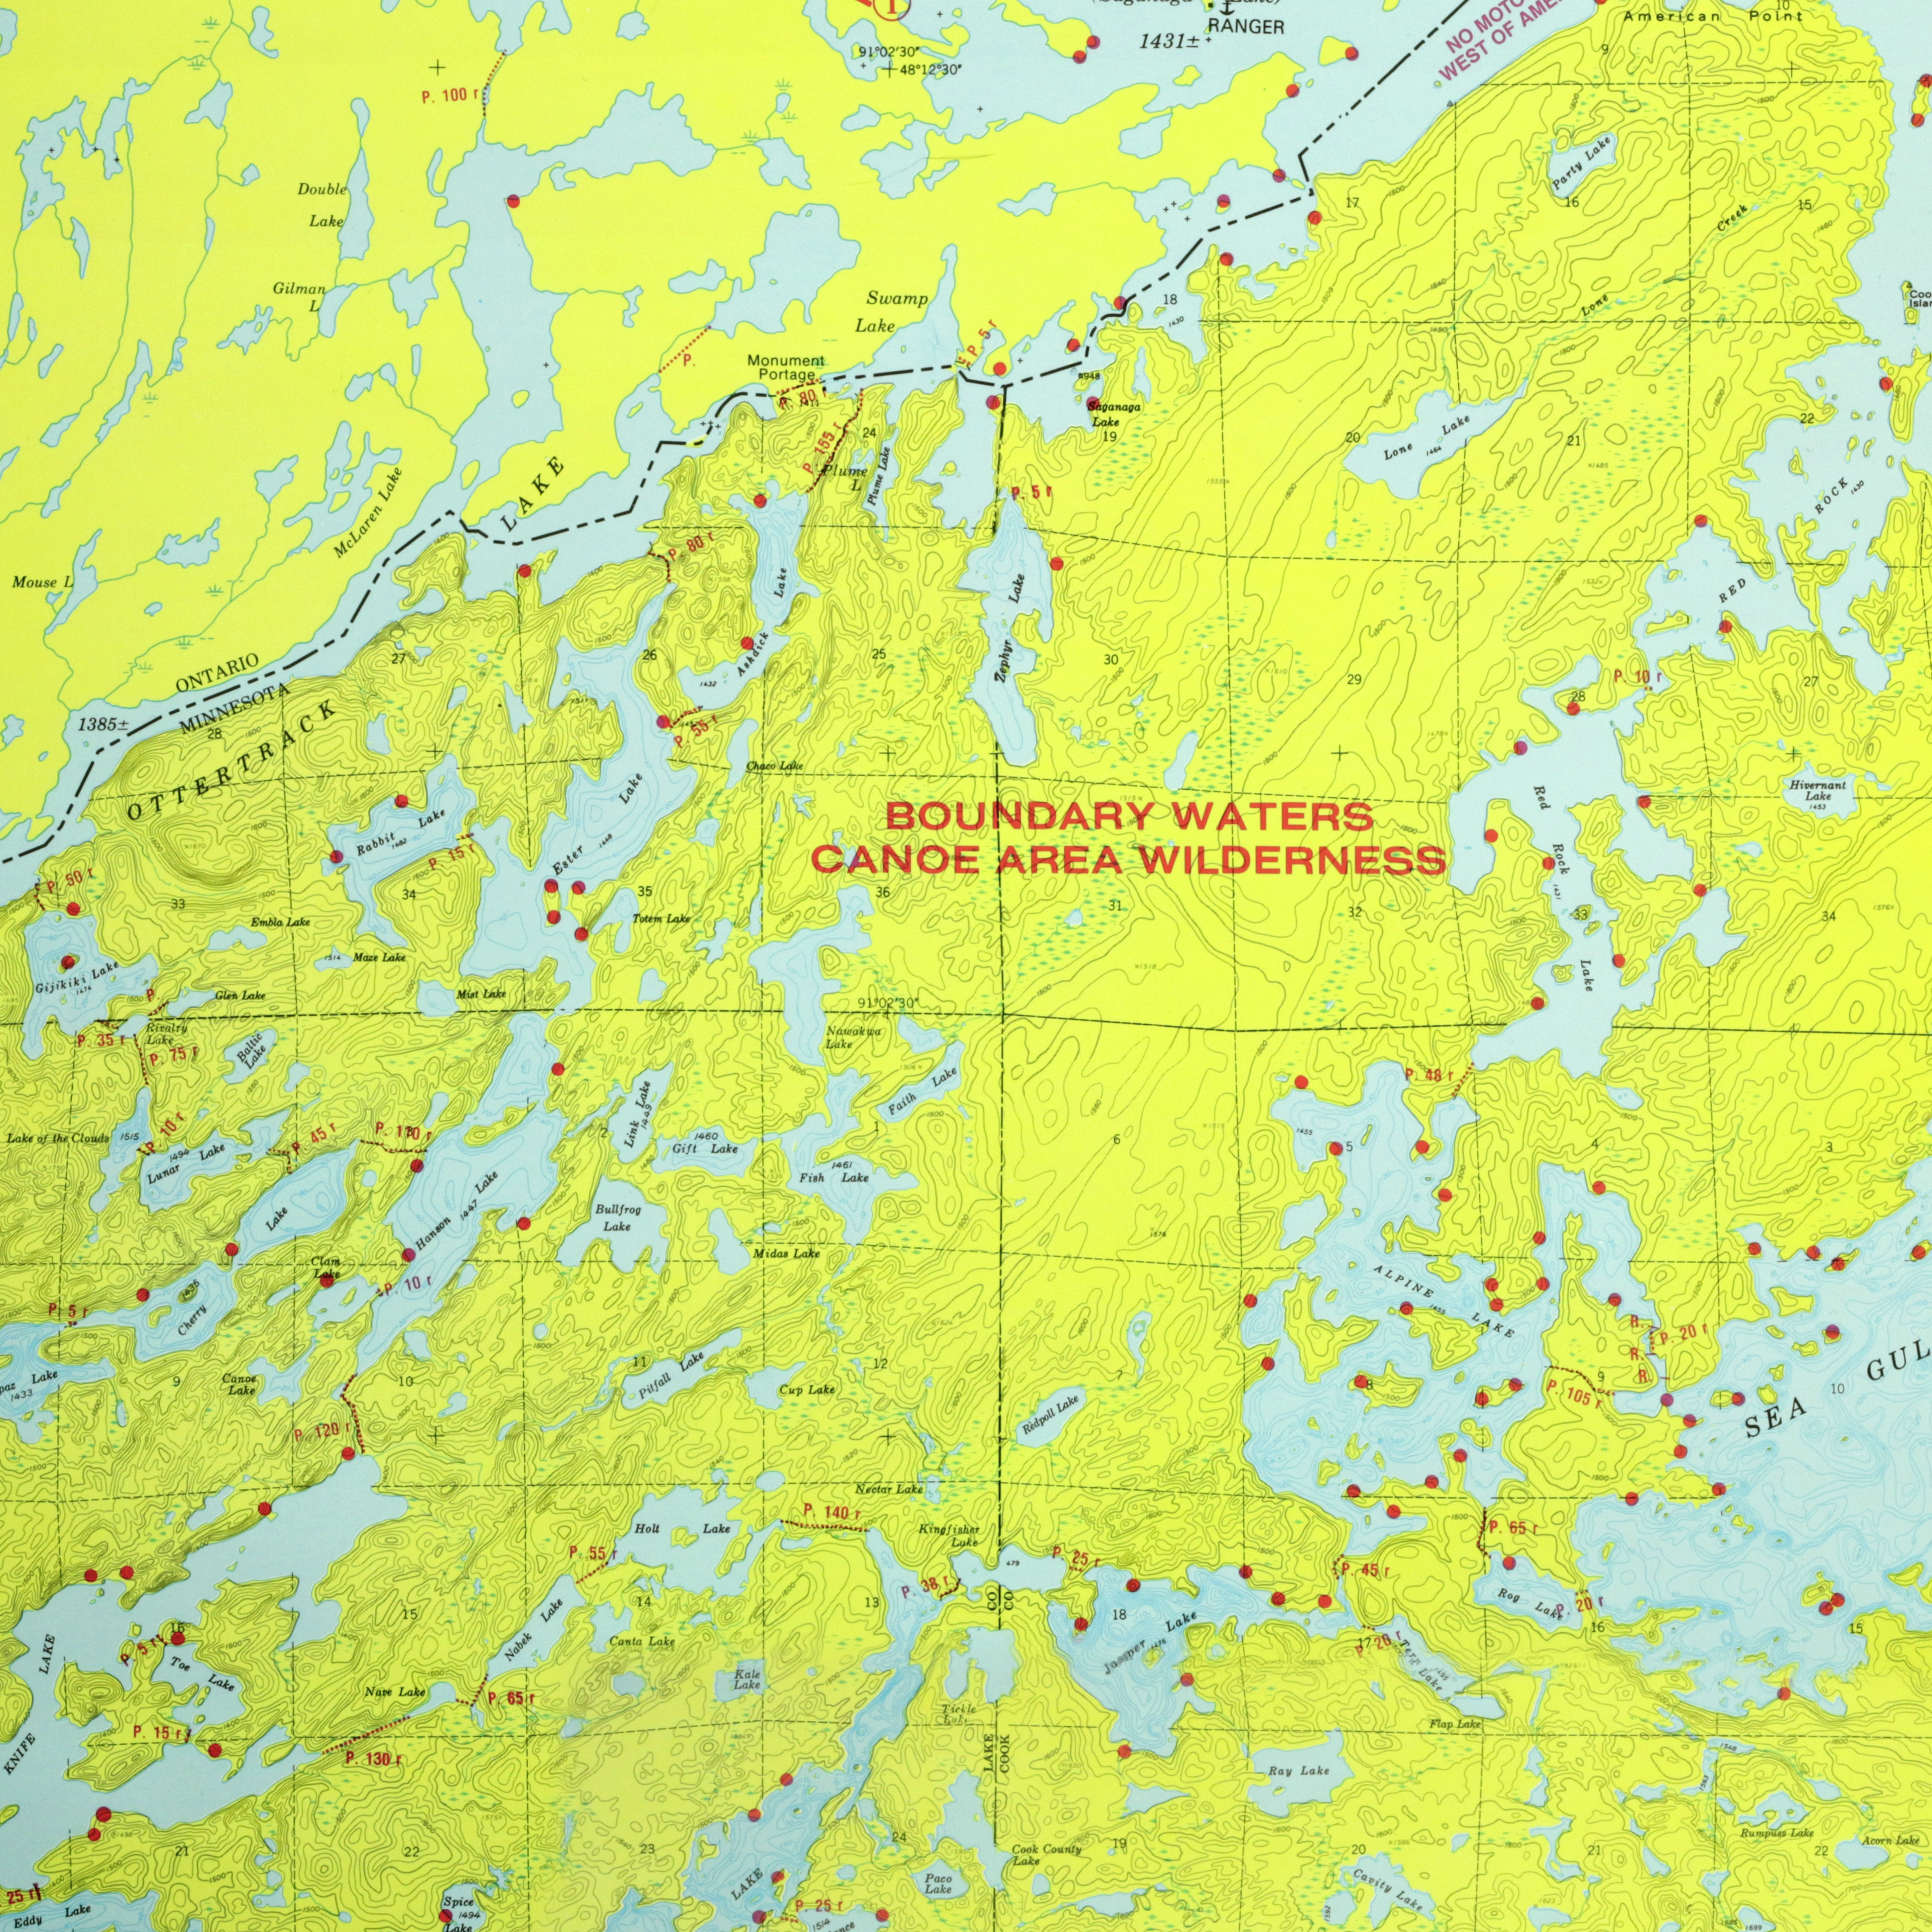 Ester Hanson Lake Base Camp Seagull Canoe Outfitters - Bwca entry point map